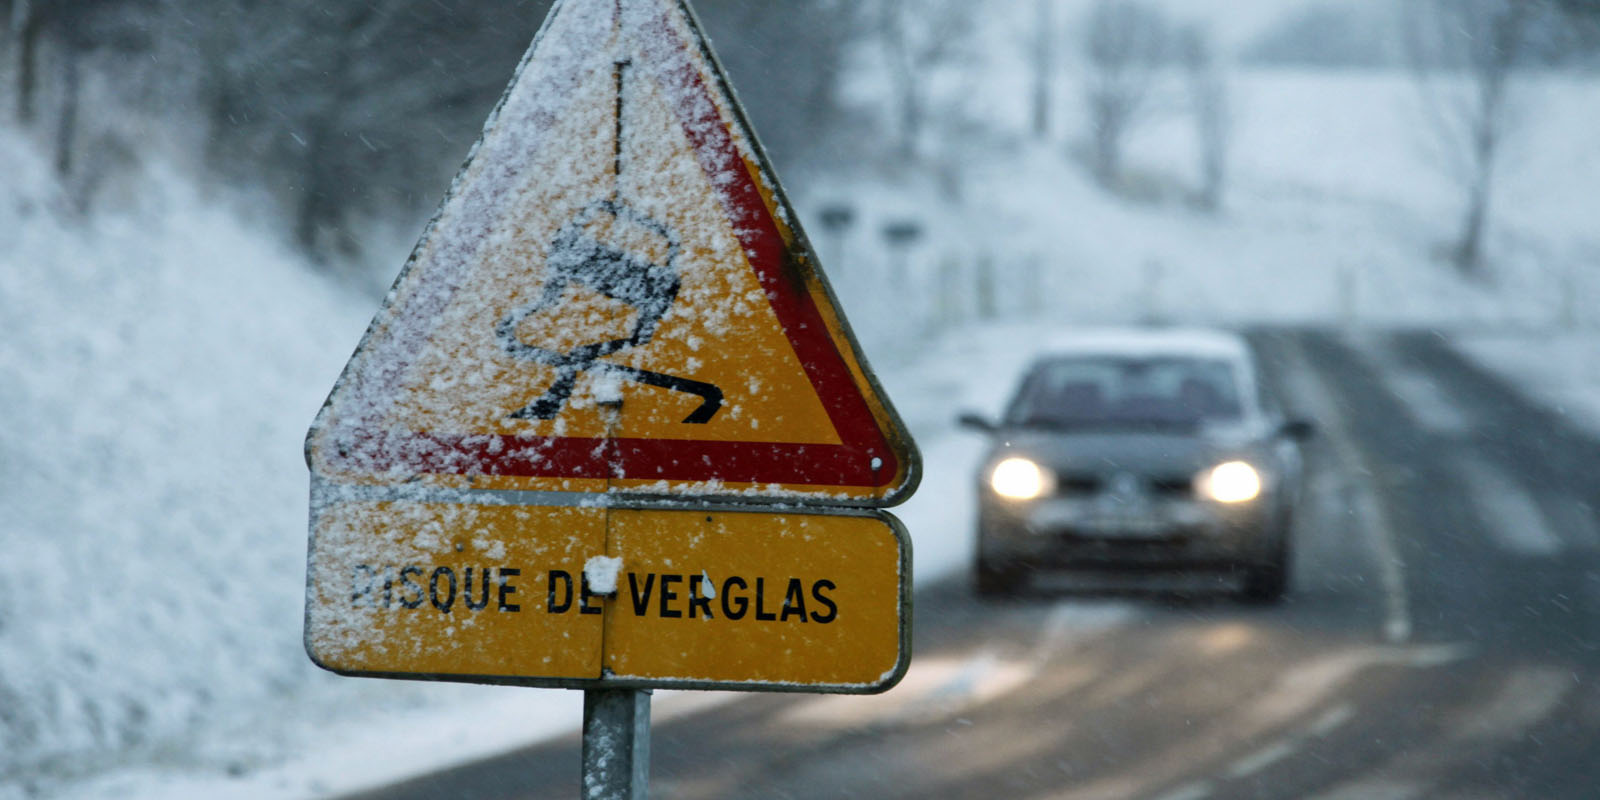 A car drives on a snow-covered road in Quievy near Cambrai, northern France, as winter weather hits France January 5, 2009. REUTERS/Pascal Rossignol (FRANCE)